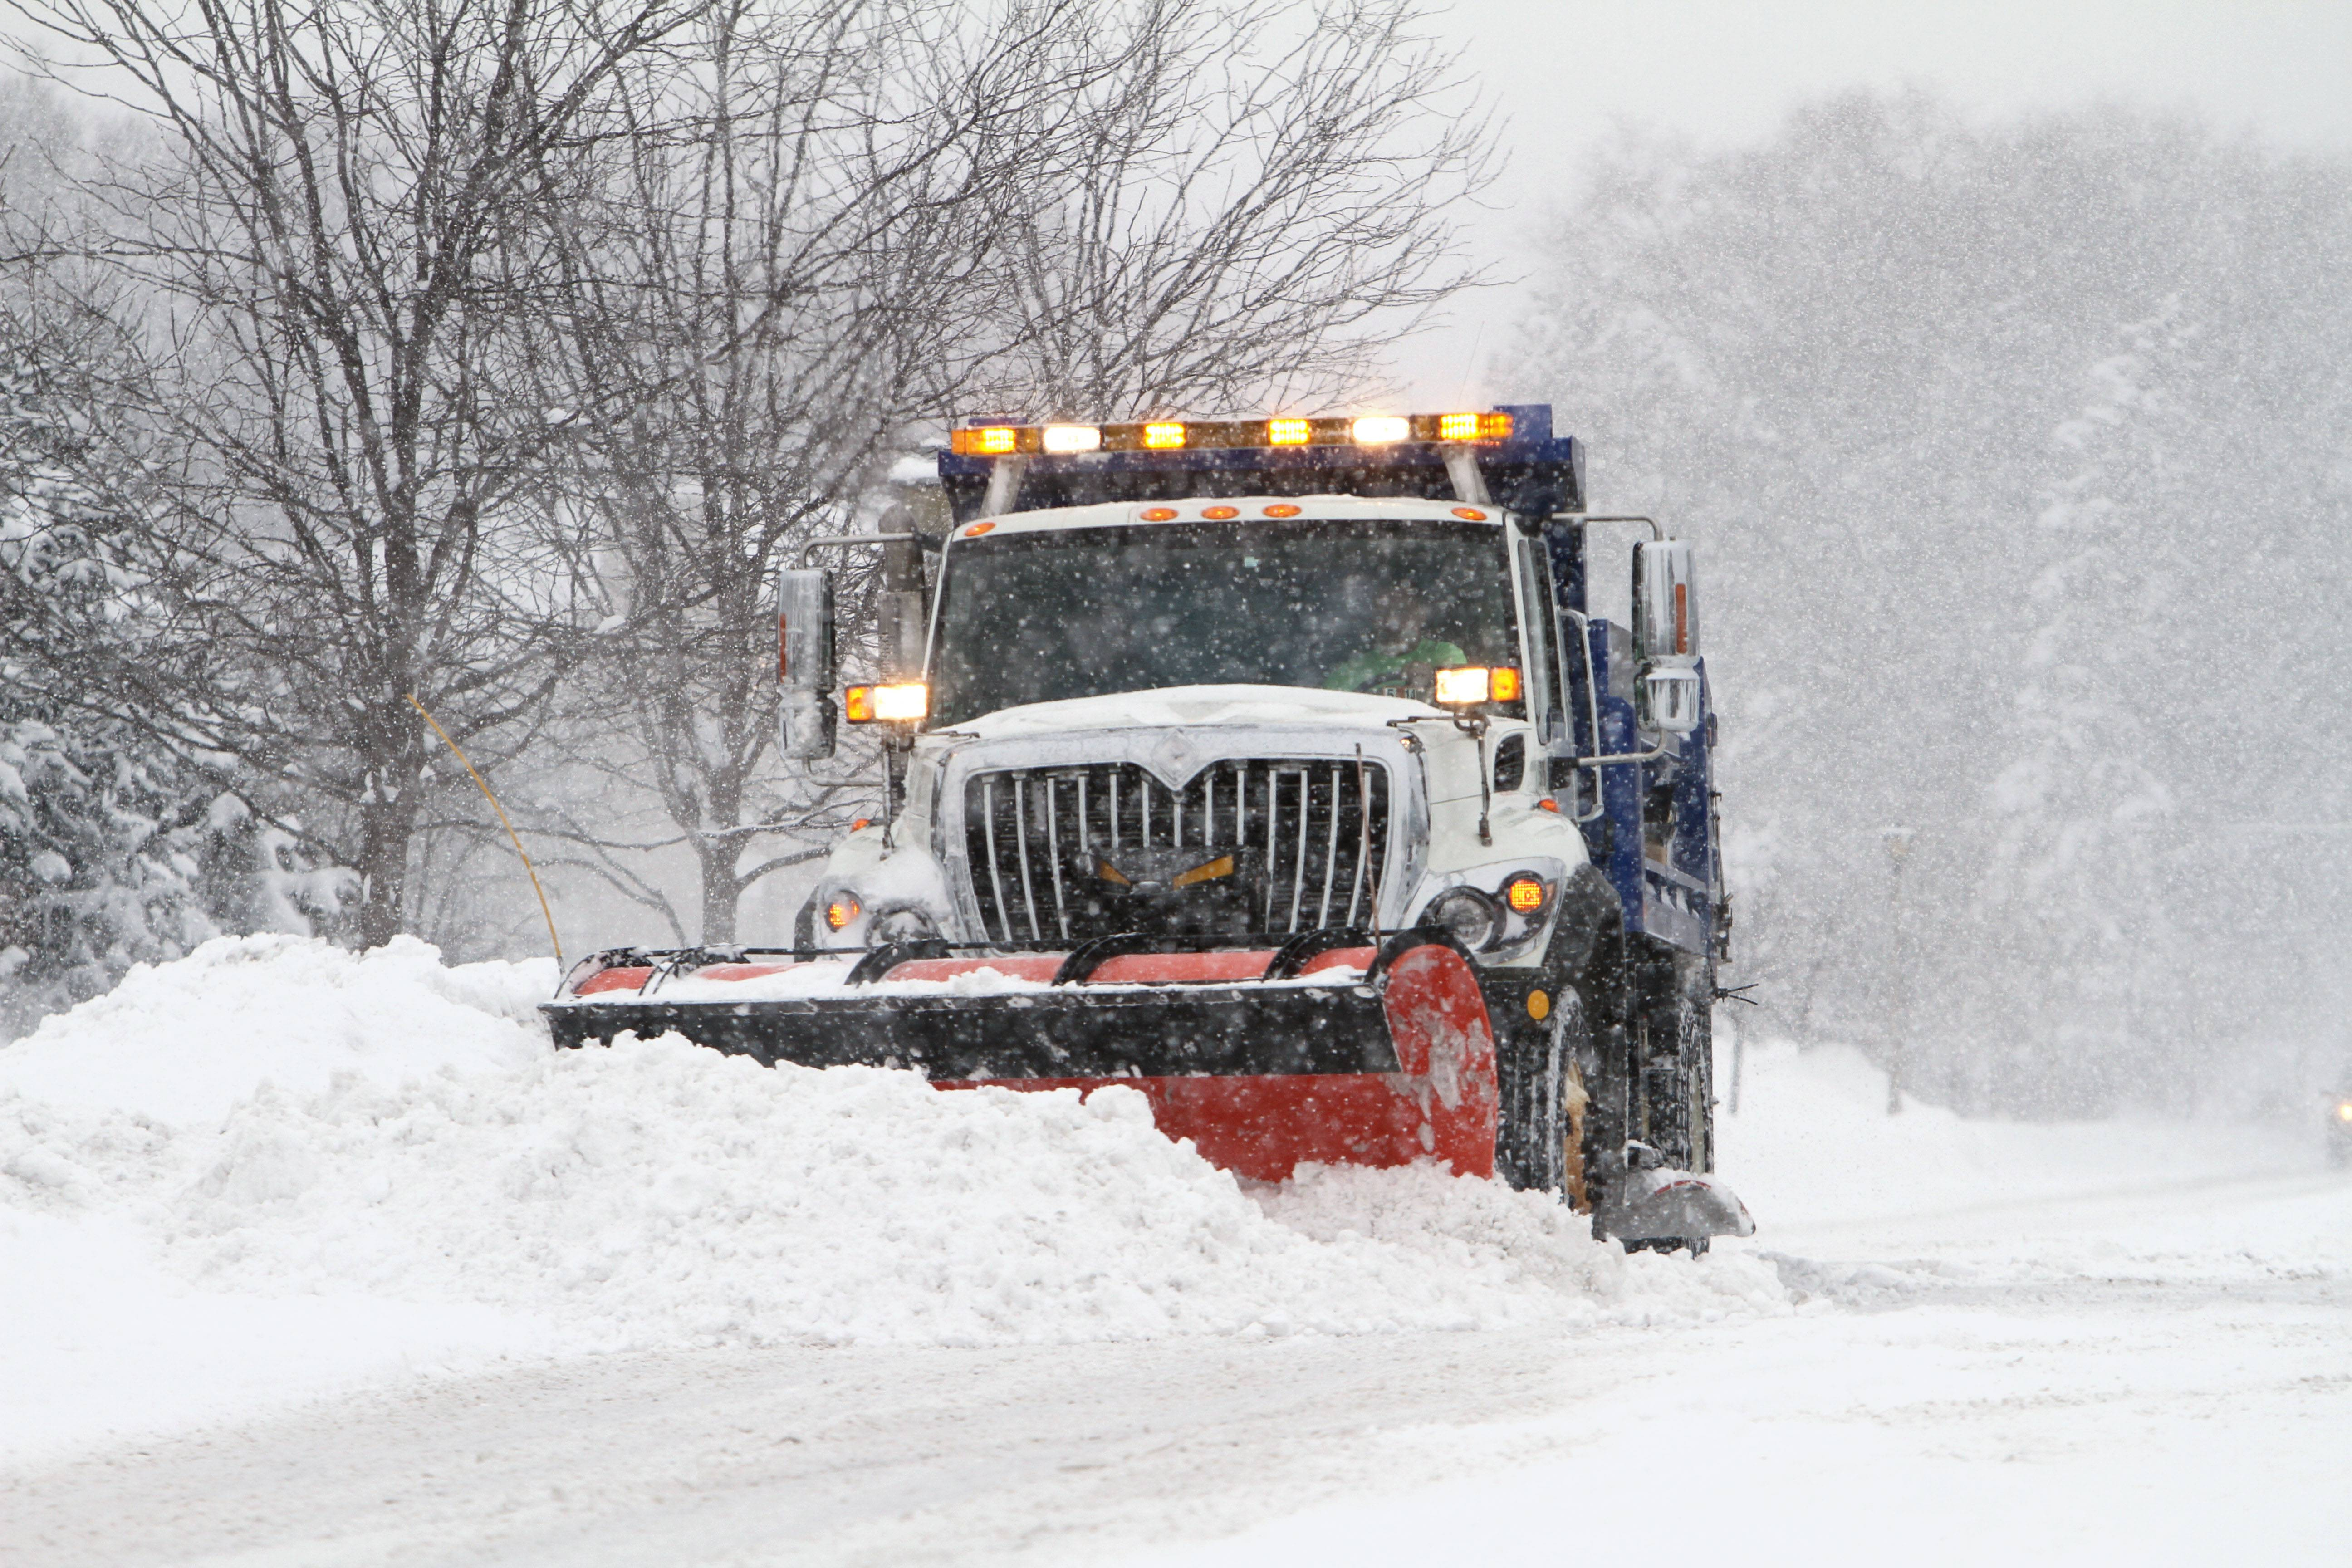 Snow plows are working overtime in many suburbs, including Arlington Heights, this winter.